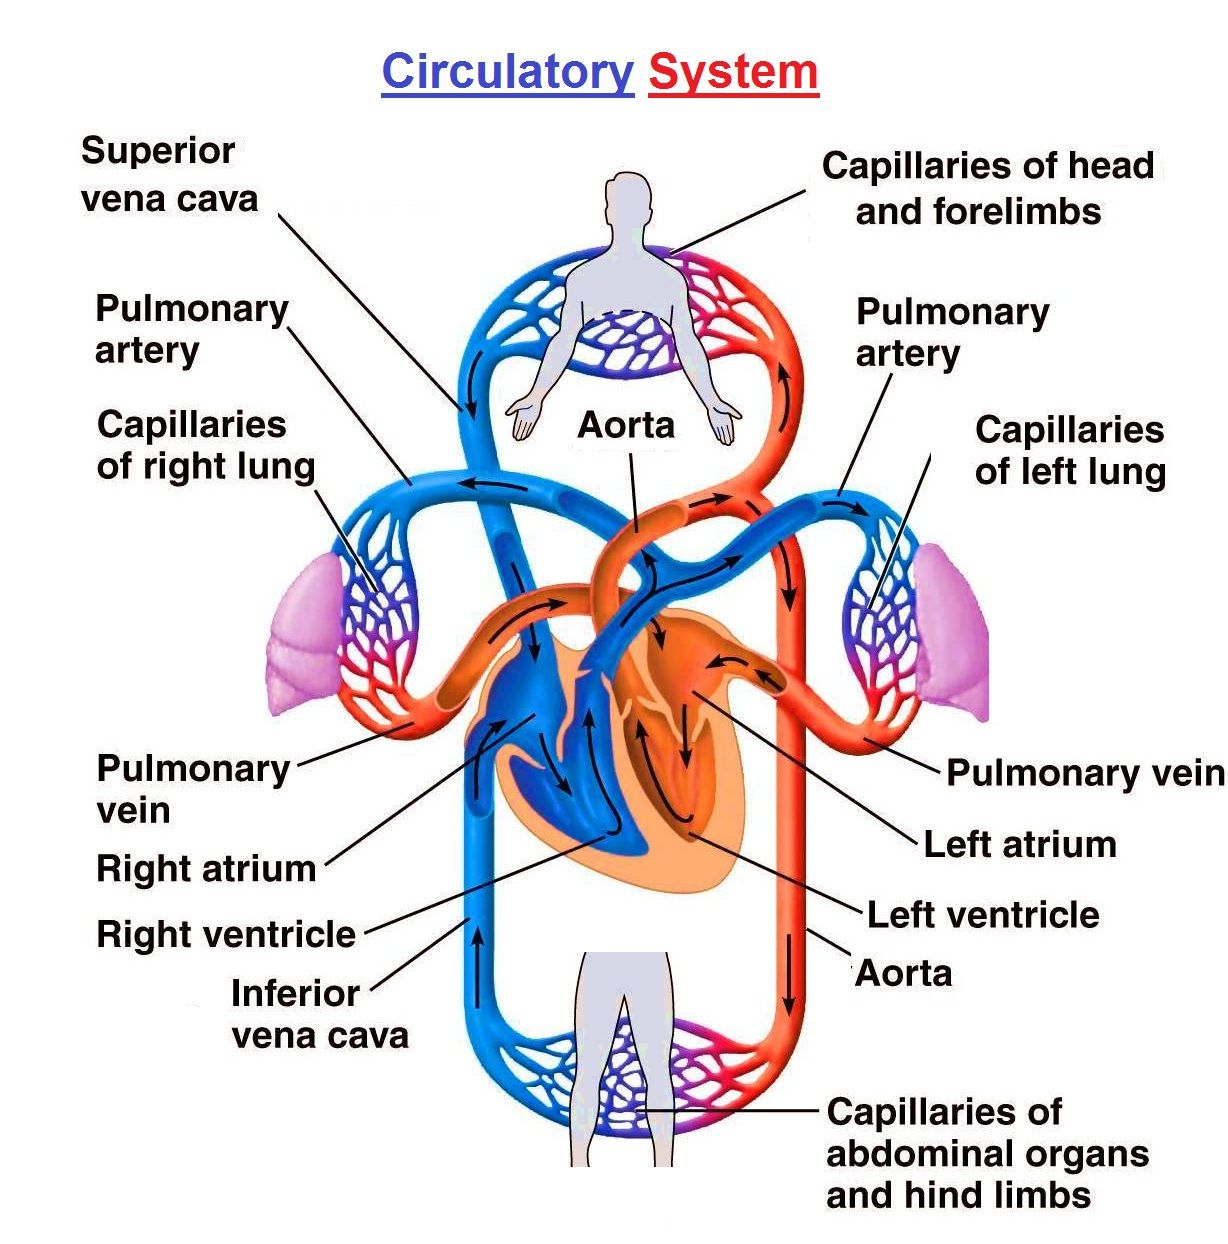 Pin By Vera Dodson On Scrub Life In 2020 Circulatory System